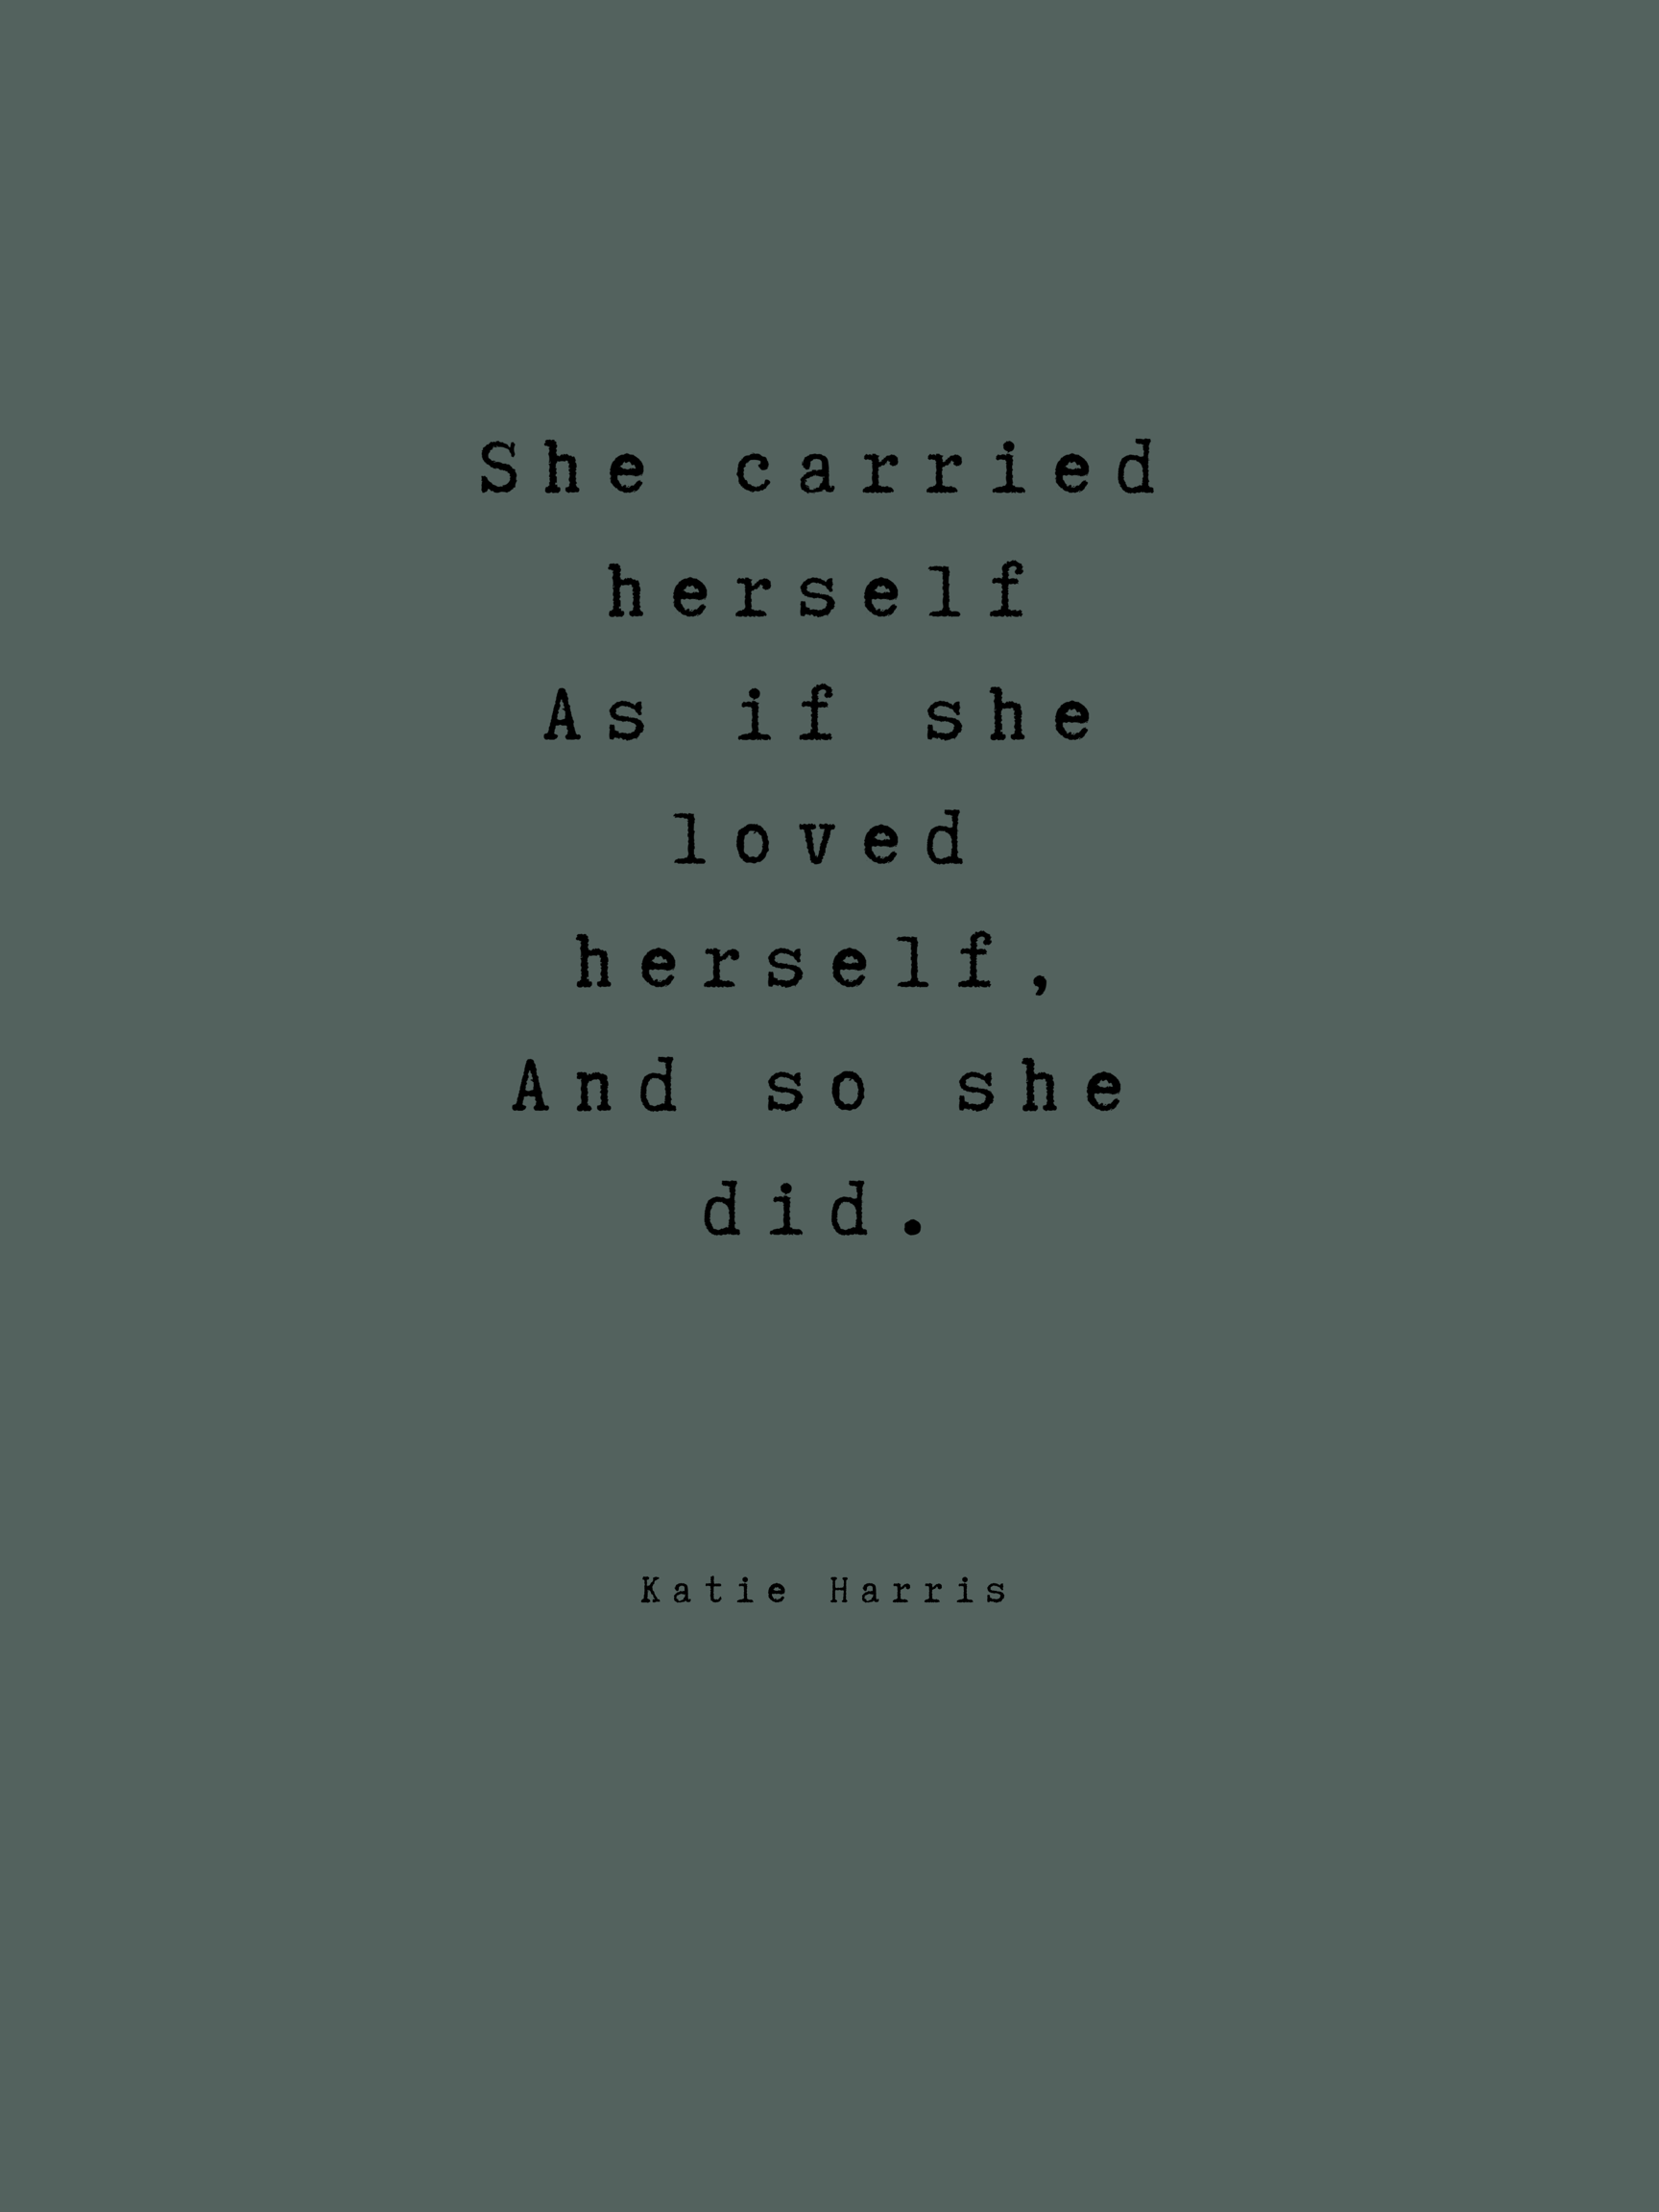 Katie Harris Writing Quotes Words Writing Poetry Poetrycommunity Life Lifequotes Womenempower Self Love Quotes Inspirational Quotes Quotes To Live By